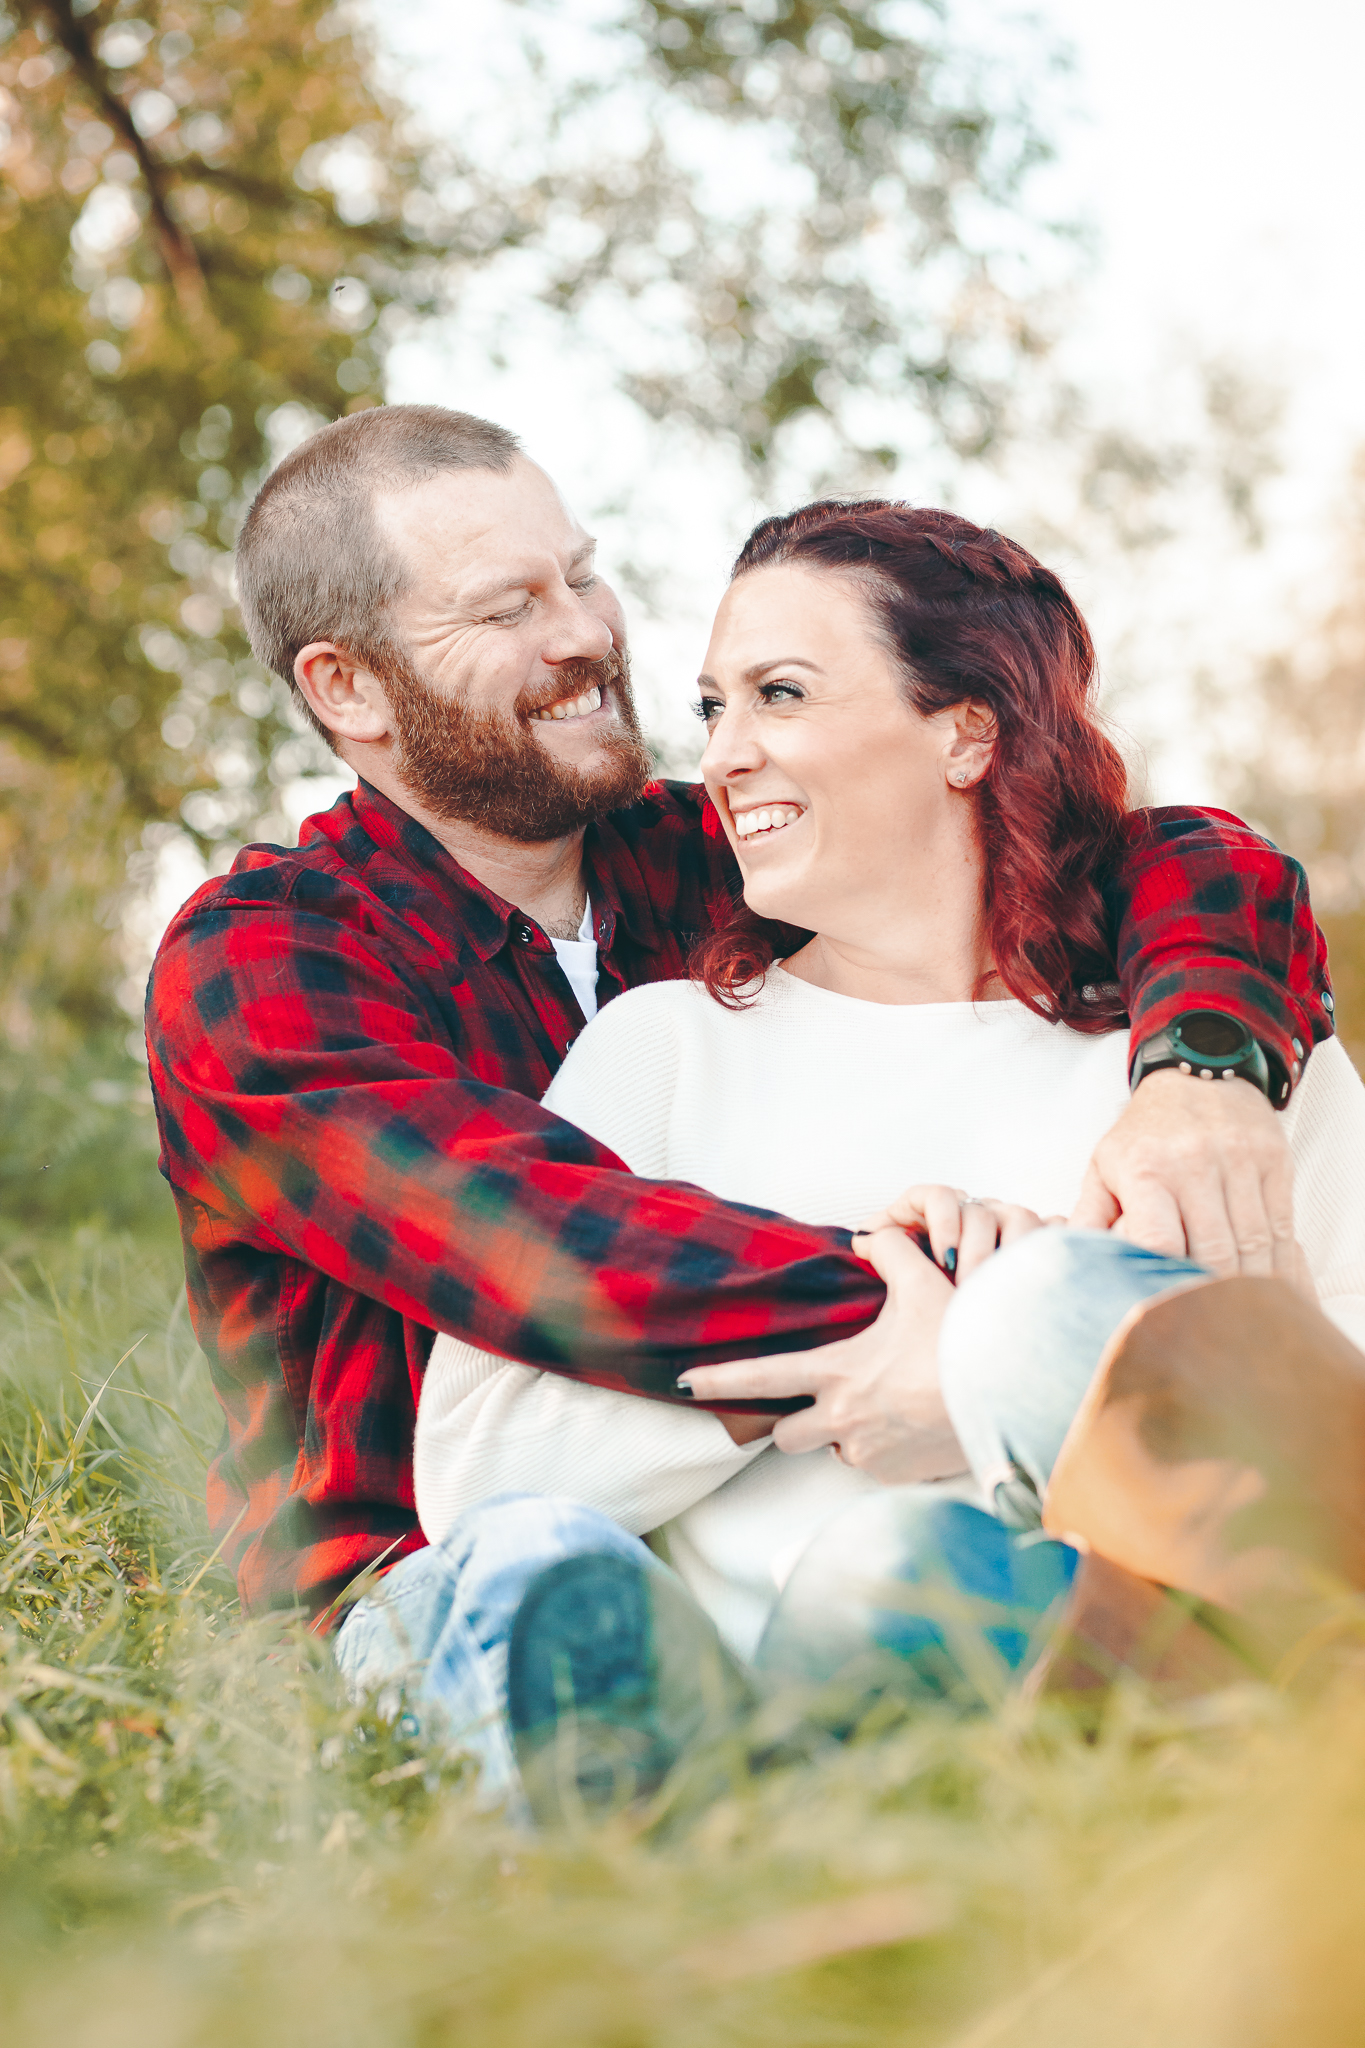 Amy D Photography- Barrie Wedding Photography- Engagement Session- Fall Engagement- Engagement Poses- Barrie Weddings- Wedding Photographer-14.jpg